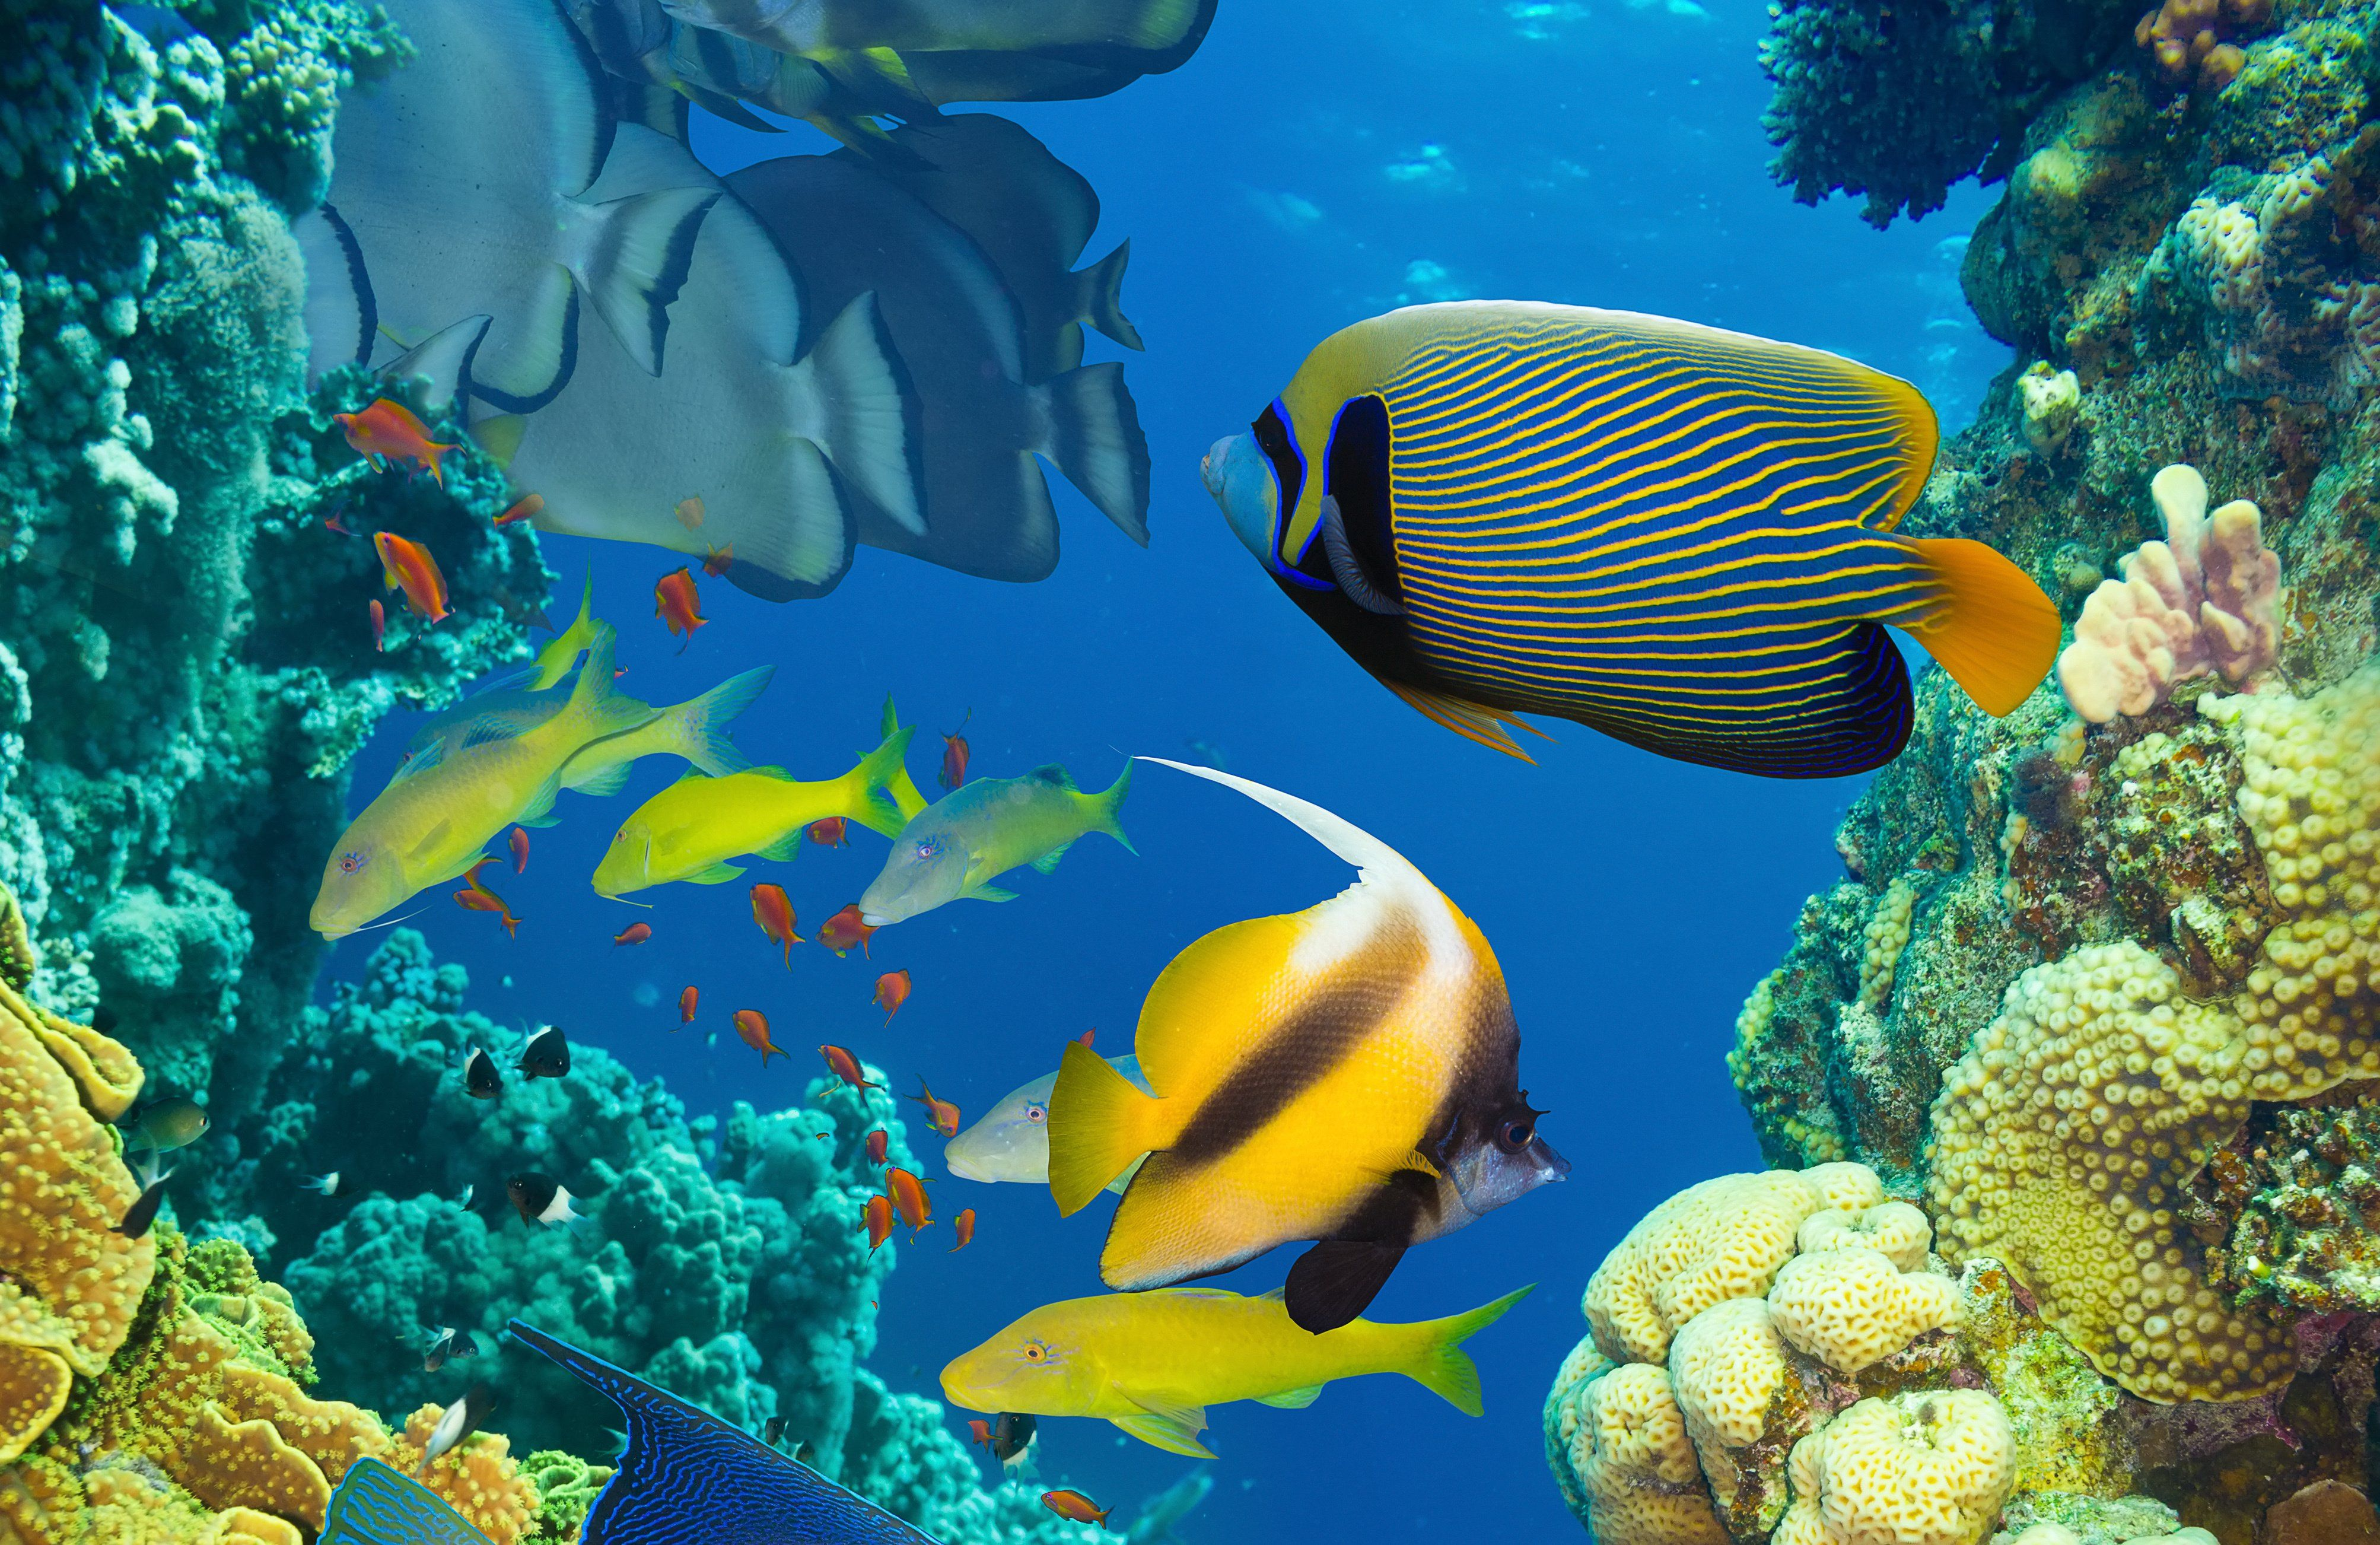 Misc: Ocean Tropical Underwater Reef Fishes Coral Reefs Sunshine ...